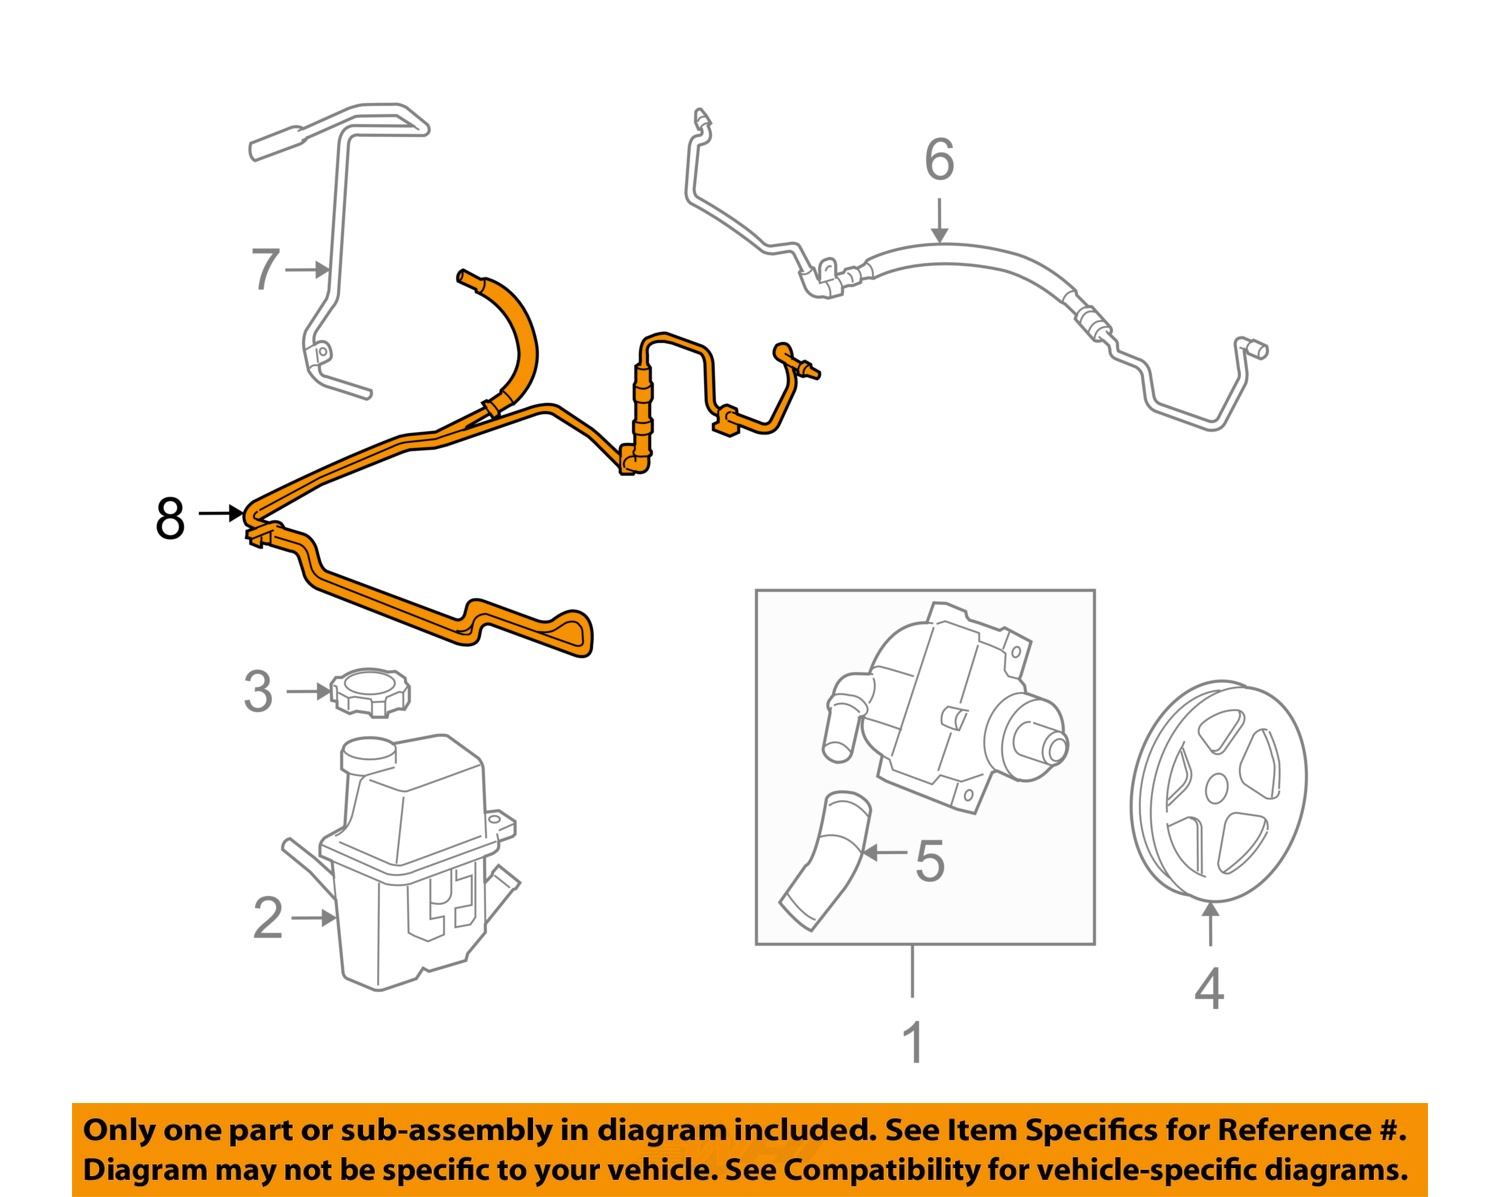 2006 Trailblazer Power Steering Hose Diagram Trusted Wiring Diagrams For A Fuse Chevy Monte Carlo Enthusiast U2022